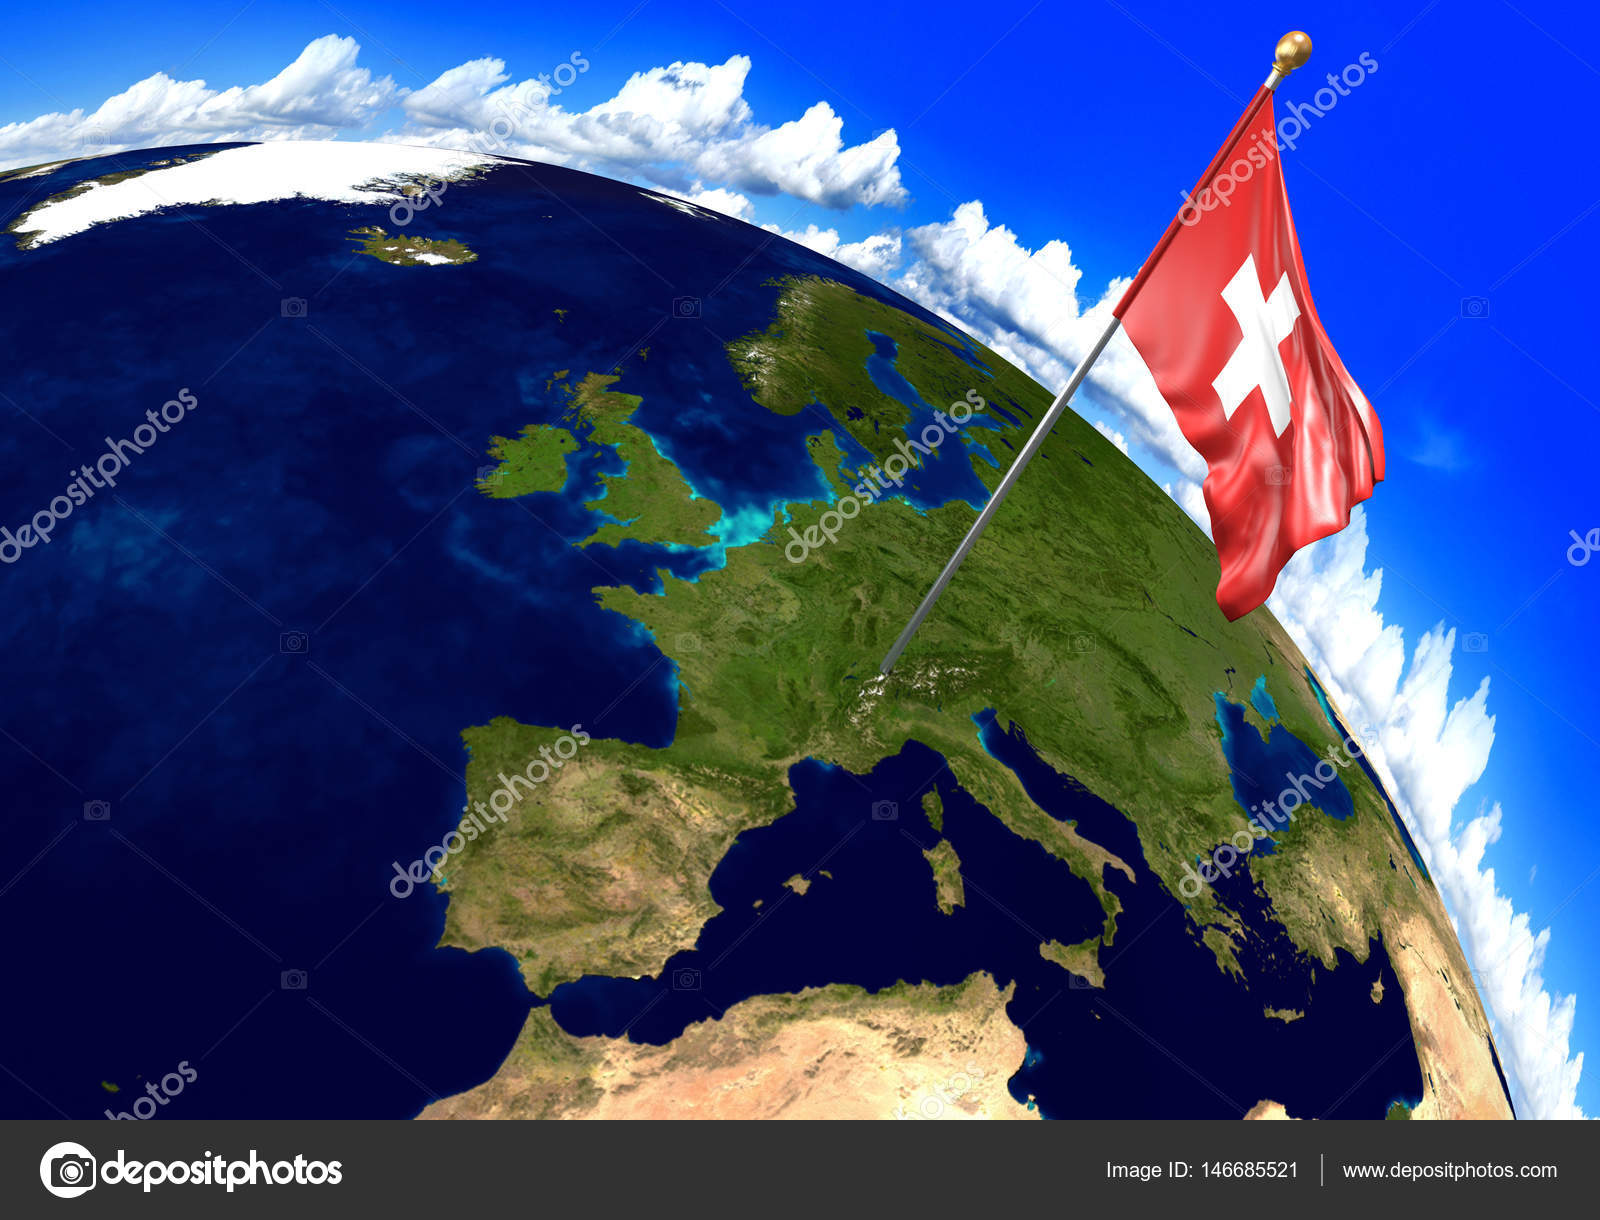 Picture of: Switzerland National Flag Marking The Country Location On World Map 3d Rendering Stock Photo C Kagenmi 146685521